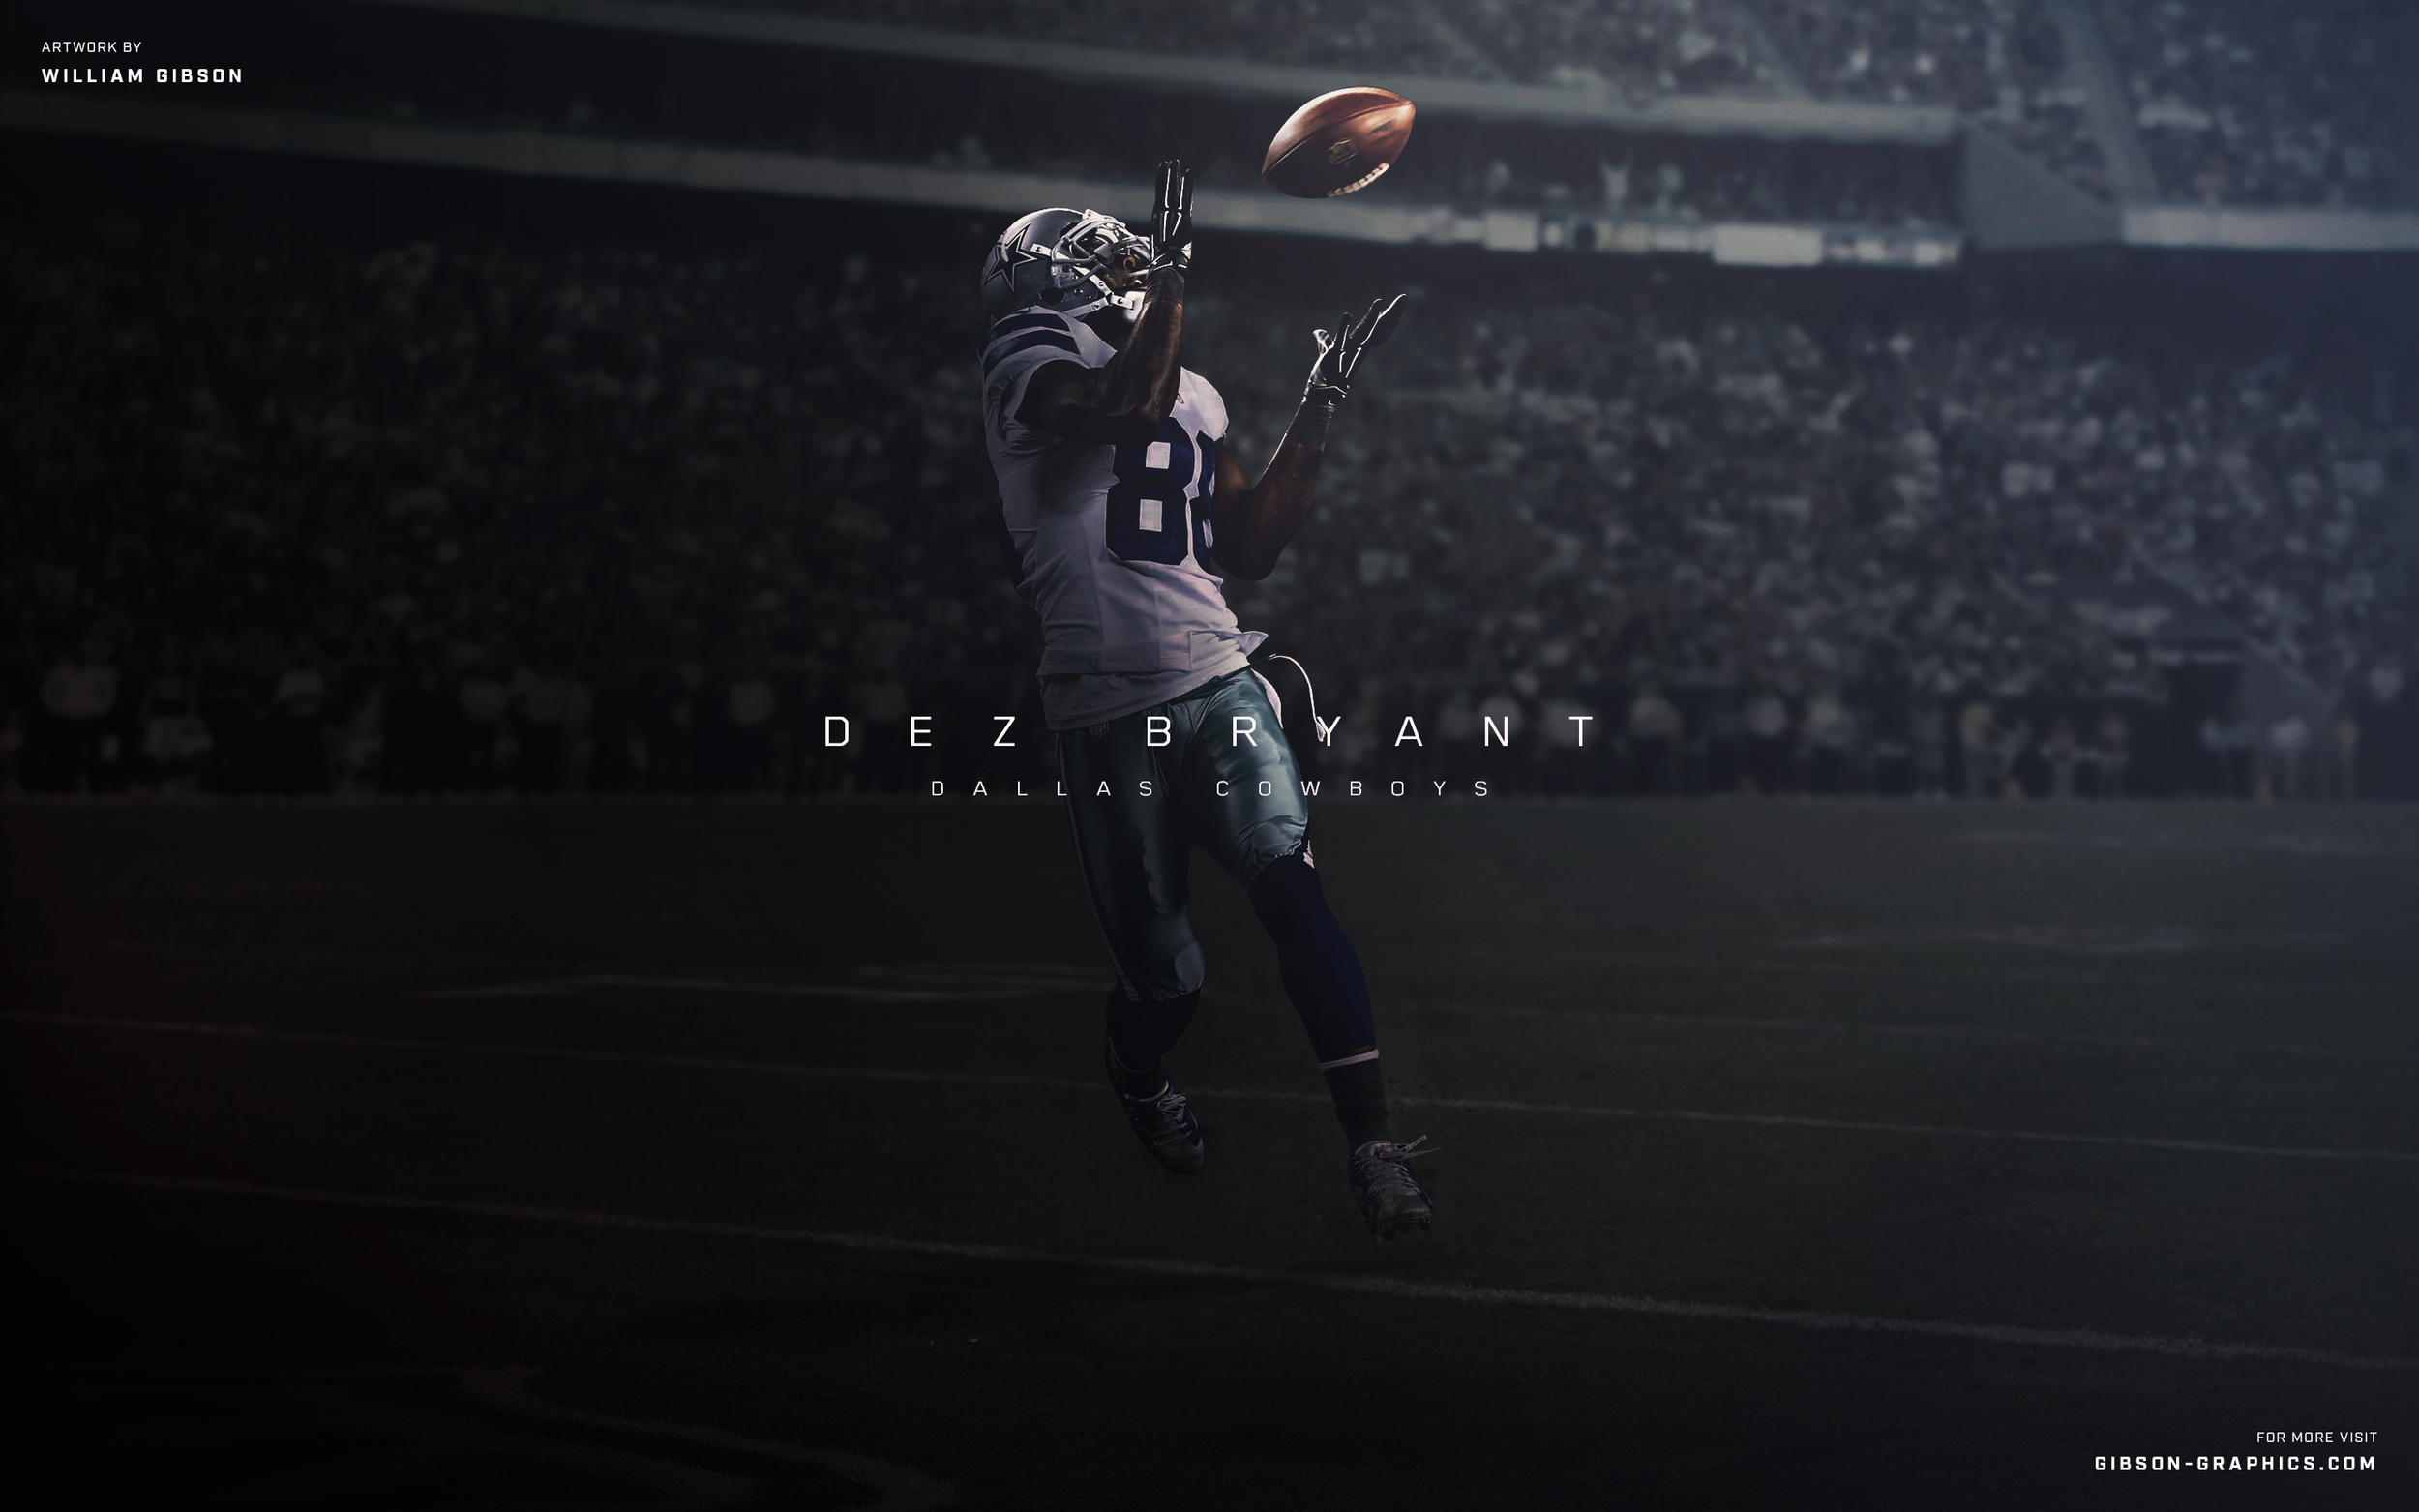 Dez Bryant Artwork